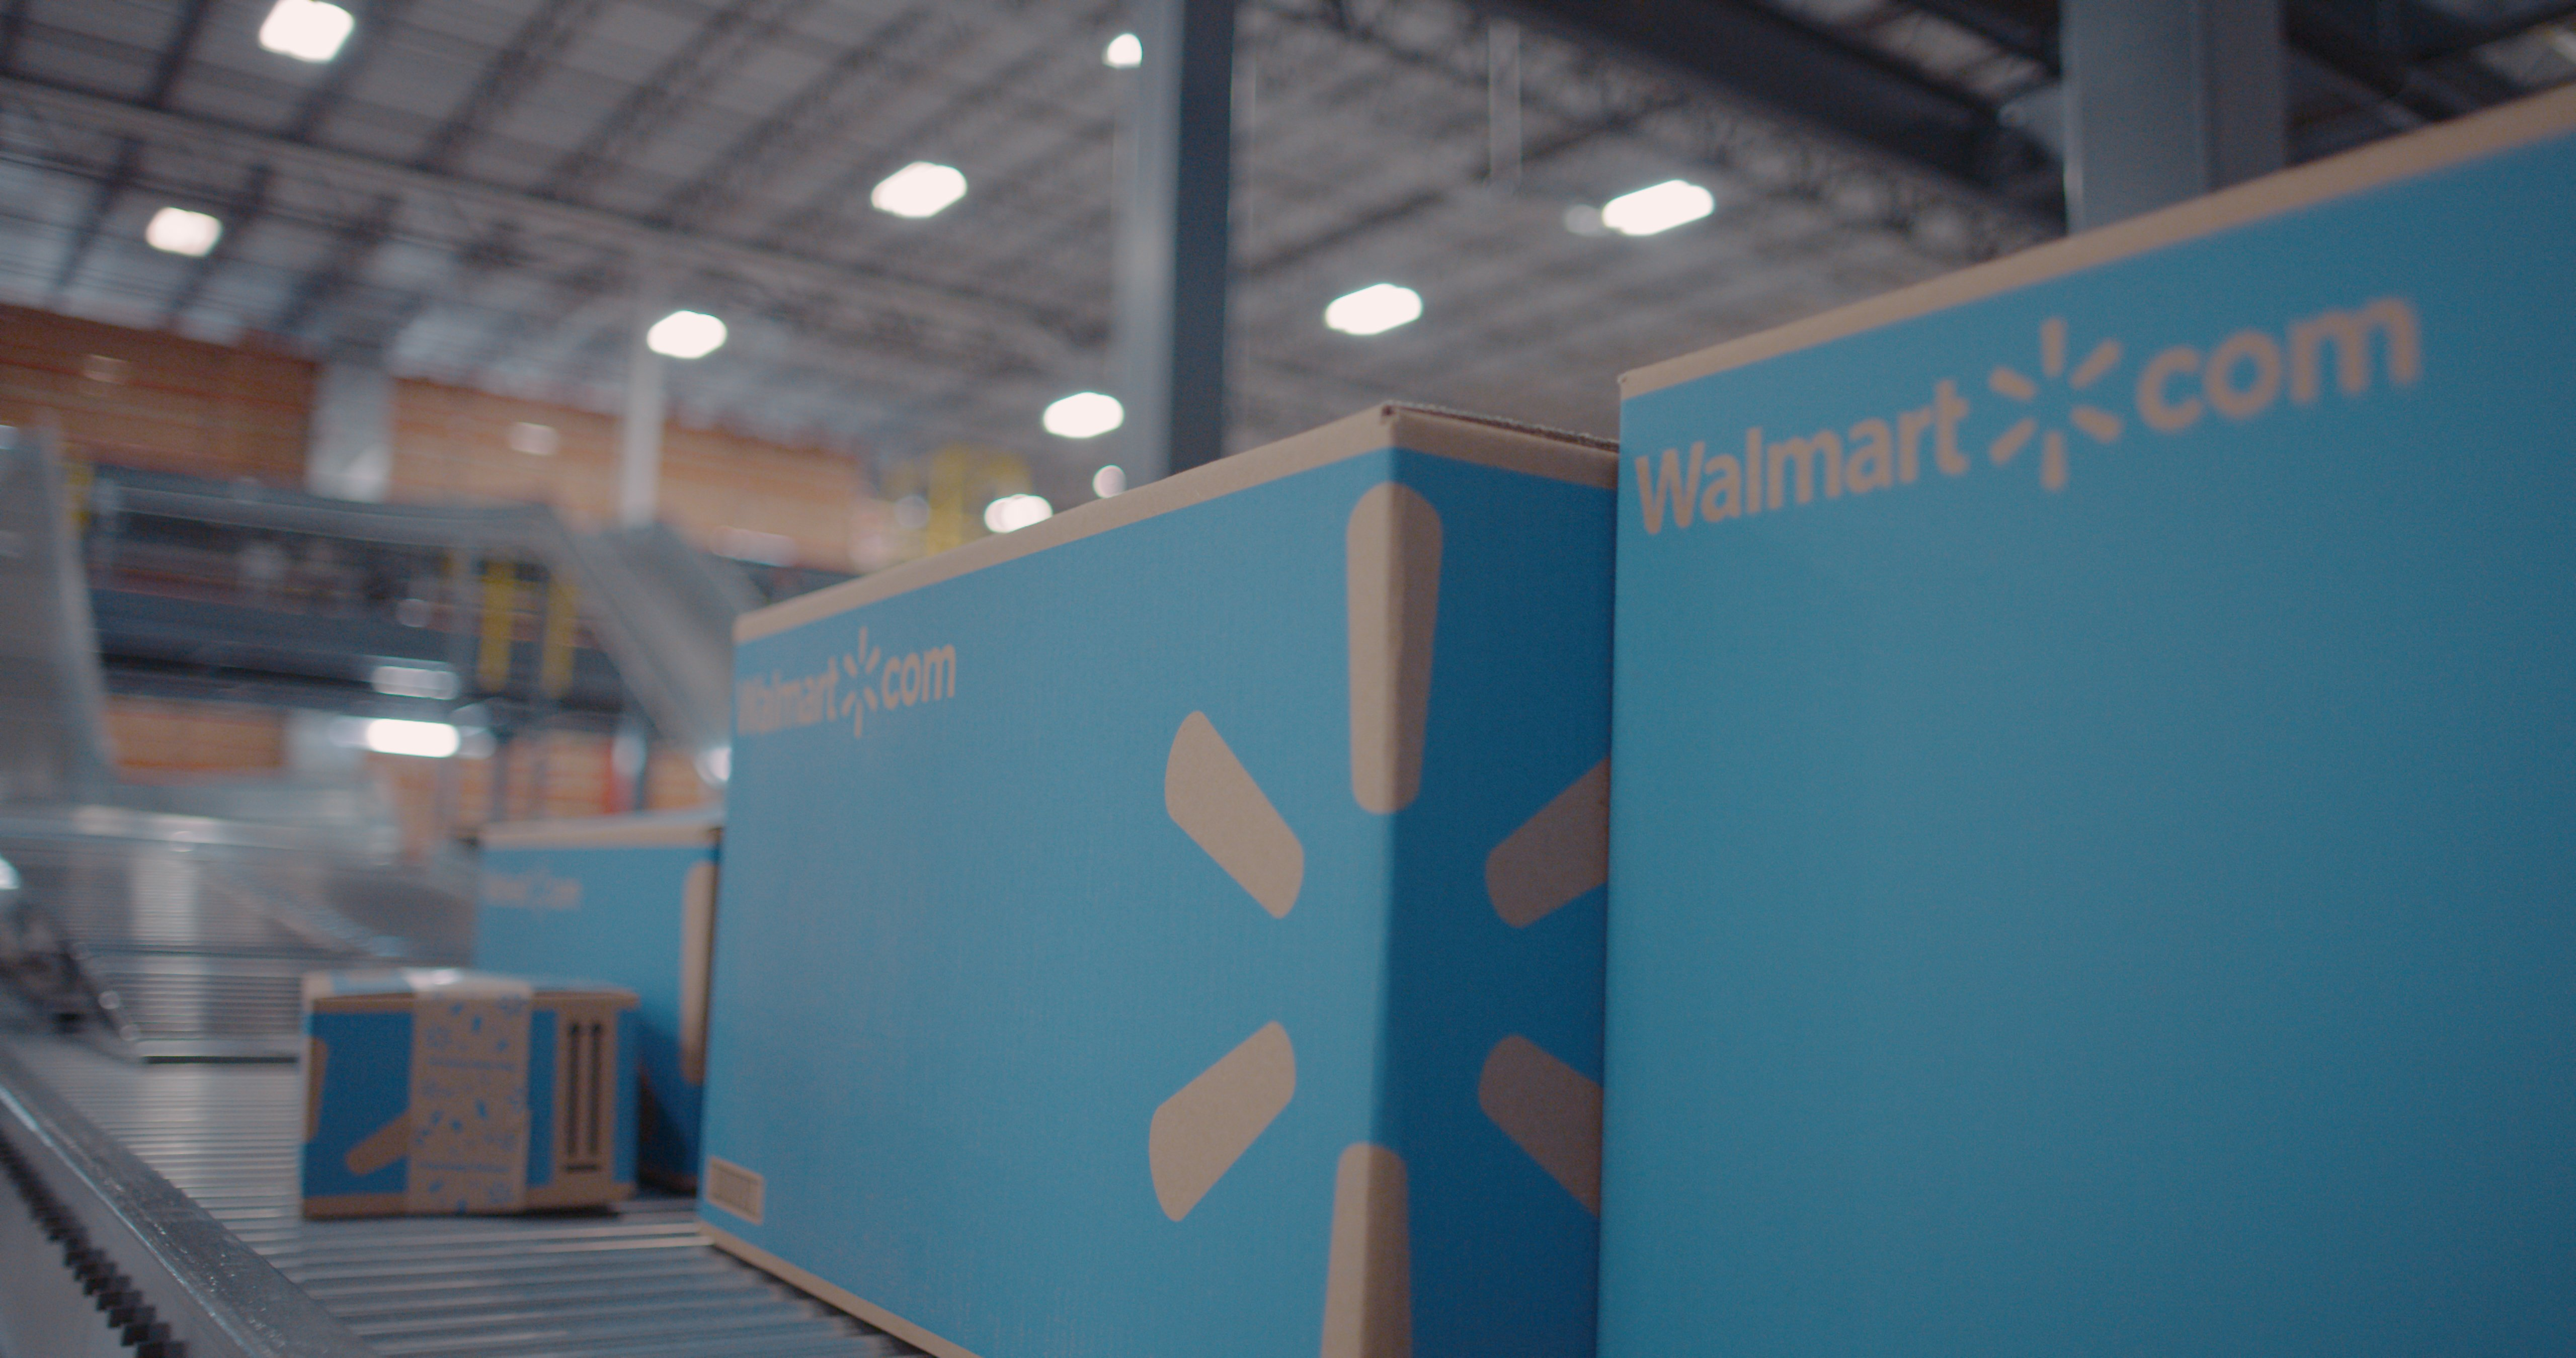 Walmart Fulfillment Services packing center (WFS)